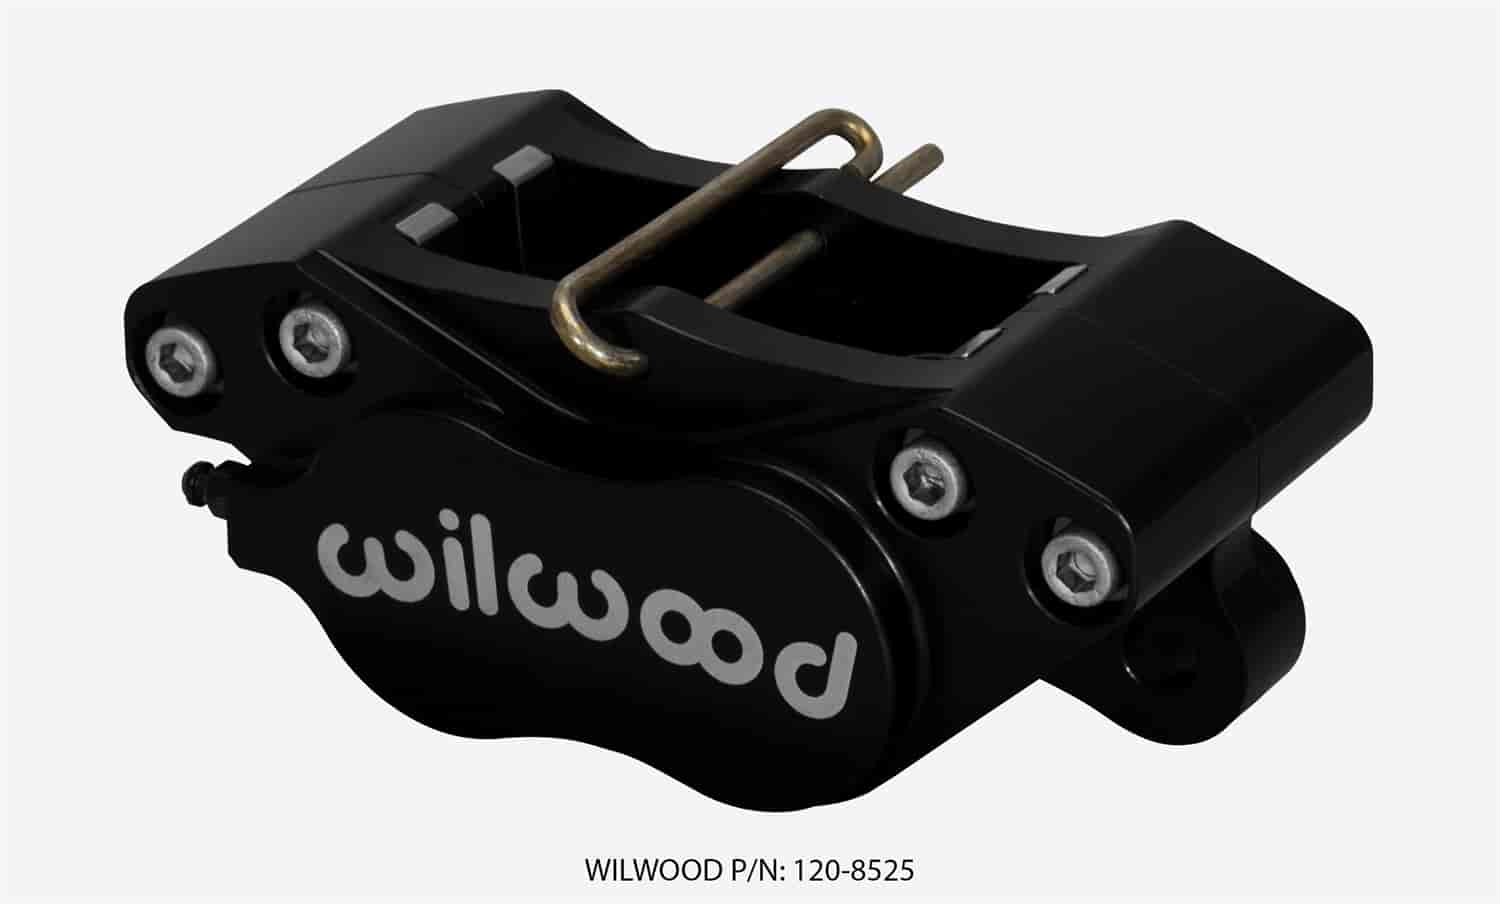 Wilwood 120-8525 - Wilwood GP320 Billet 4-Piston Calipers